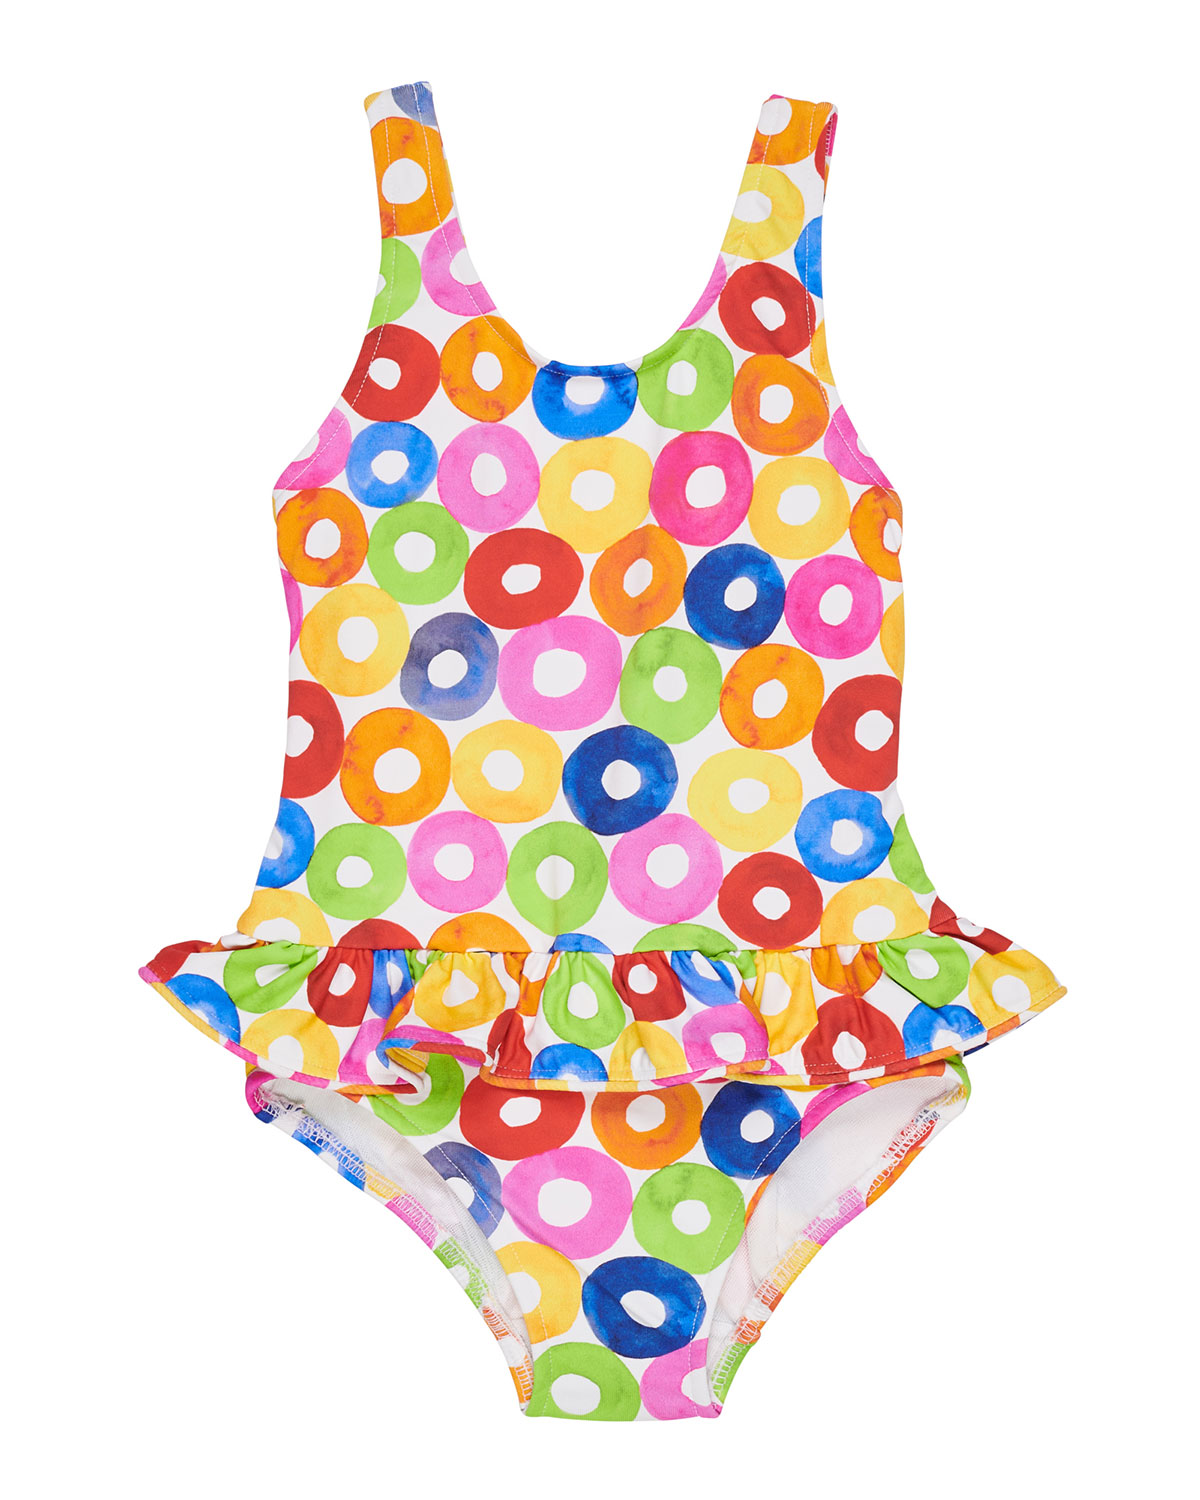 FLORENCE EISEMAN Multicolored Lifesaver-Print One-Piece Swimsuit, Size 2-4